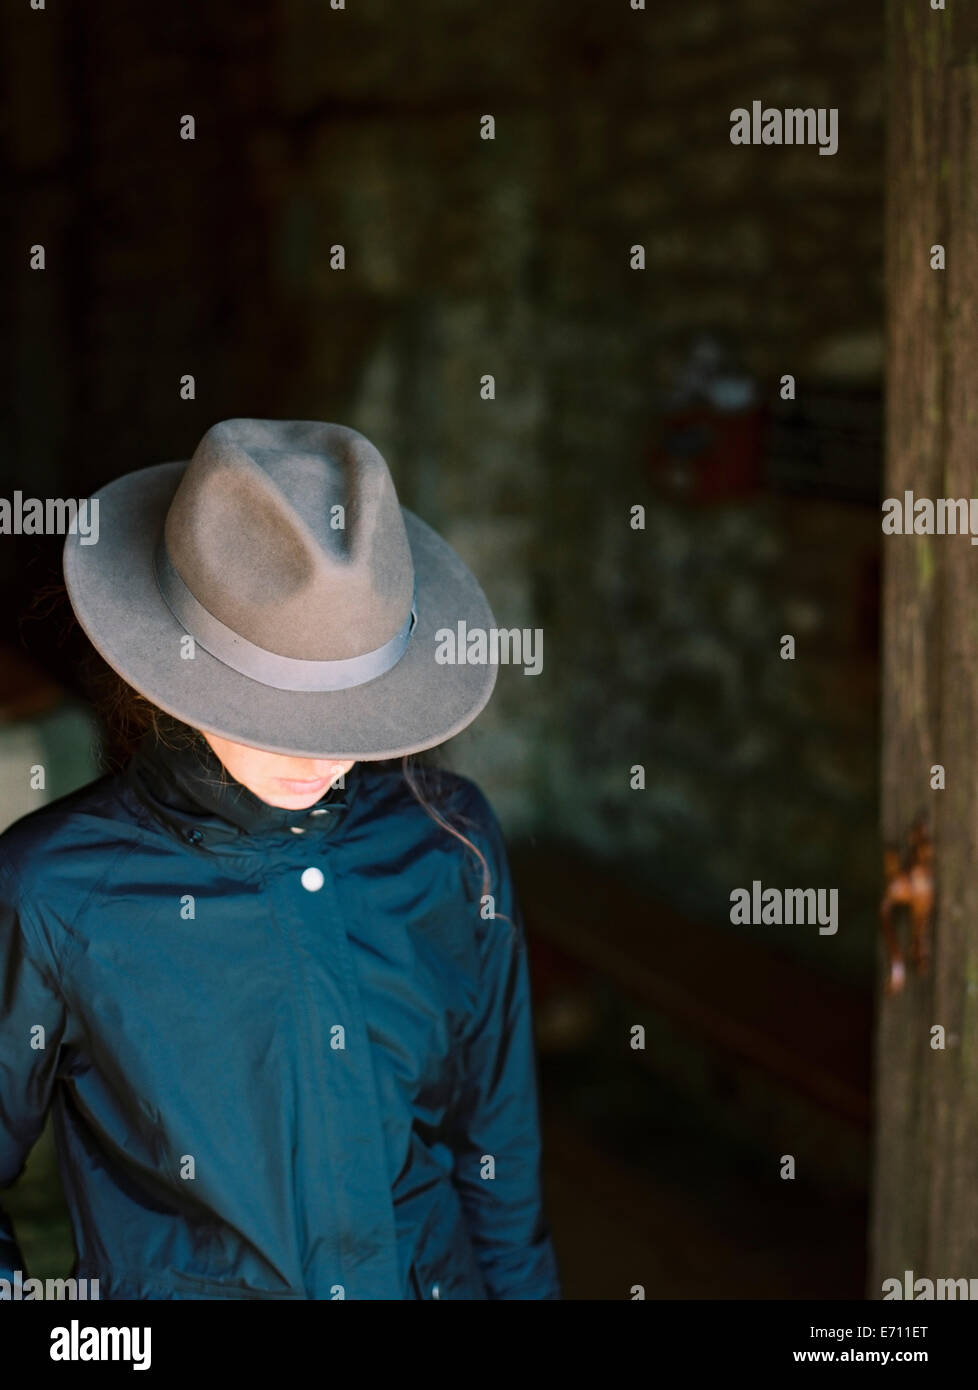 A woman with her face hidden by a hat with a brim. - Stock Image